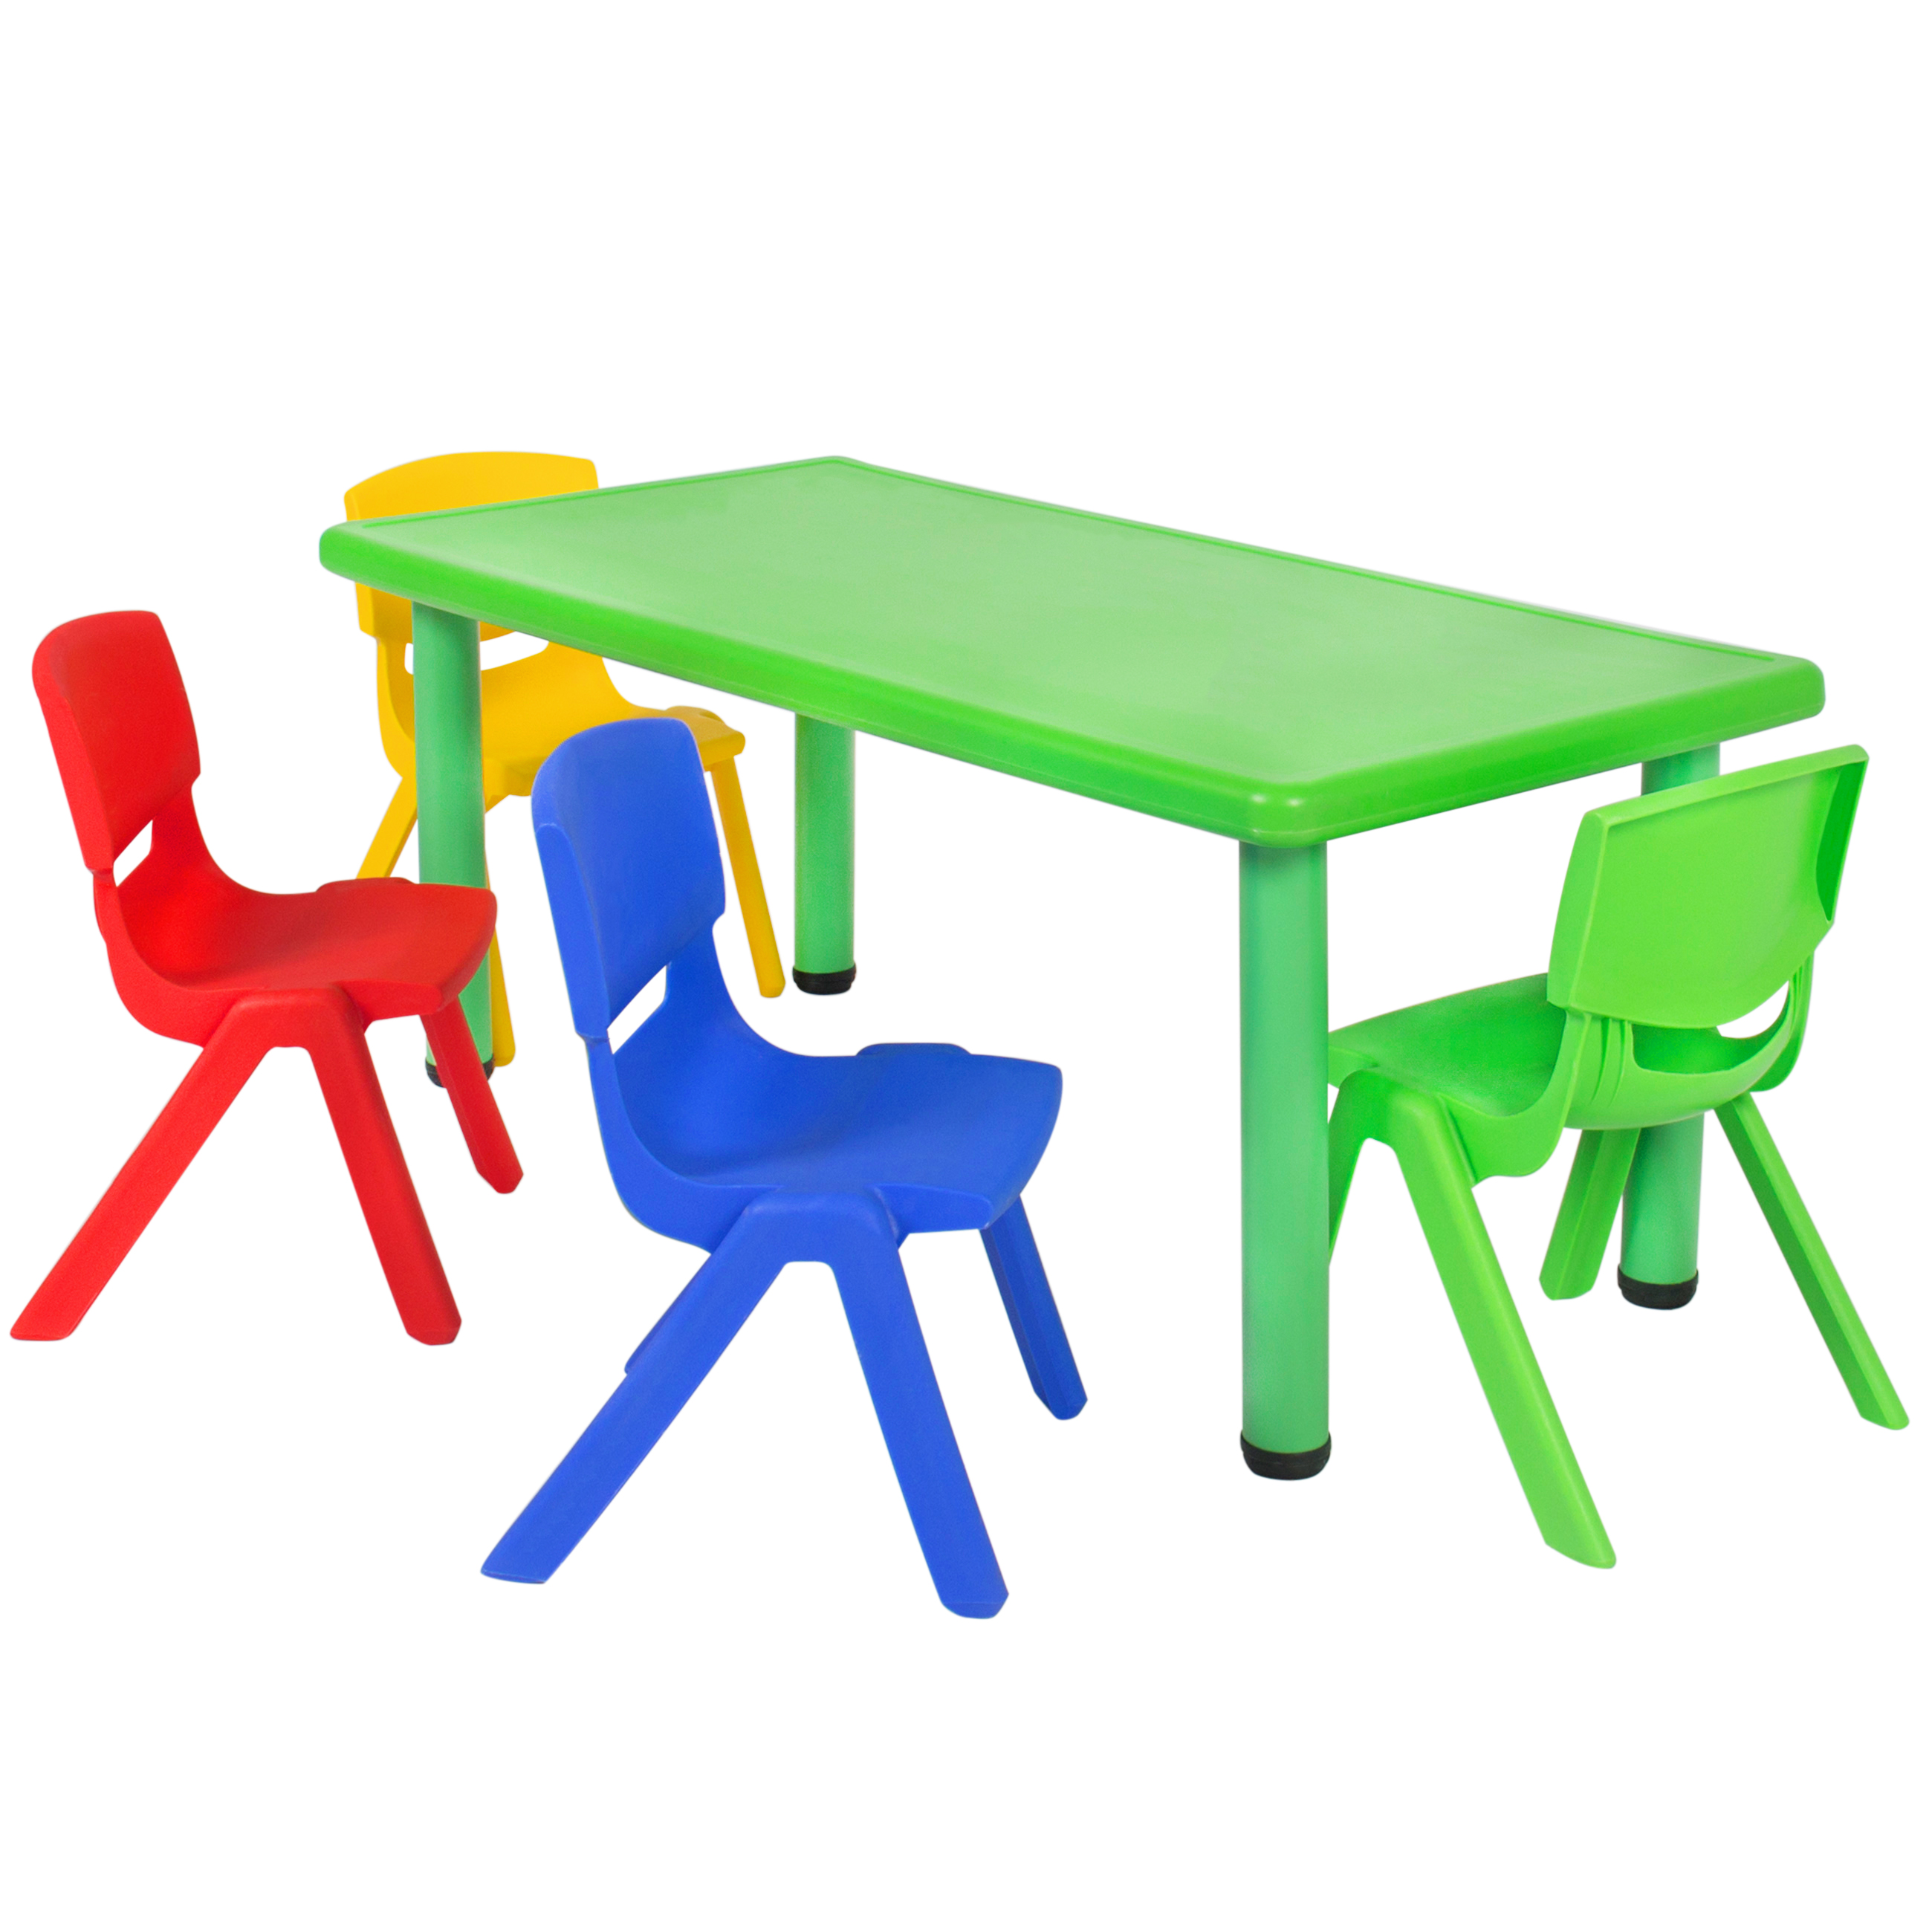 Best Choice Products Multicolored Kids Plastic Table And 4 Chairs Set  Colorful Furniture Play Fun School